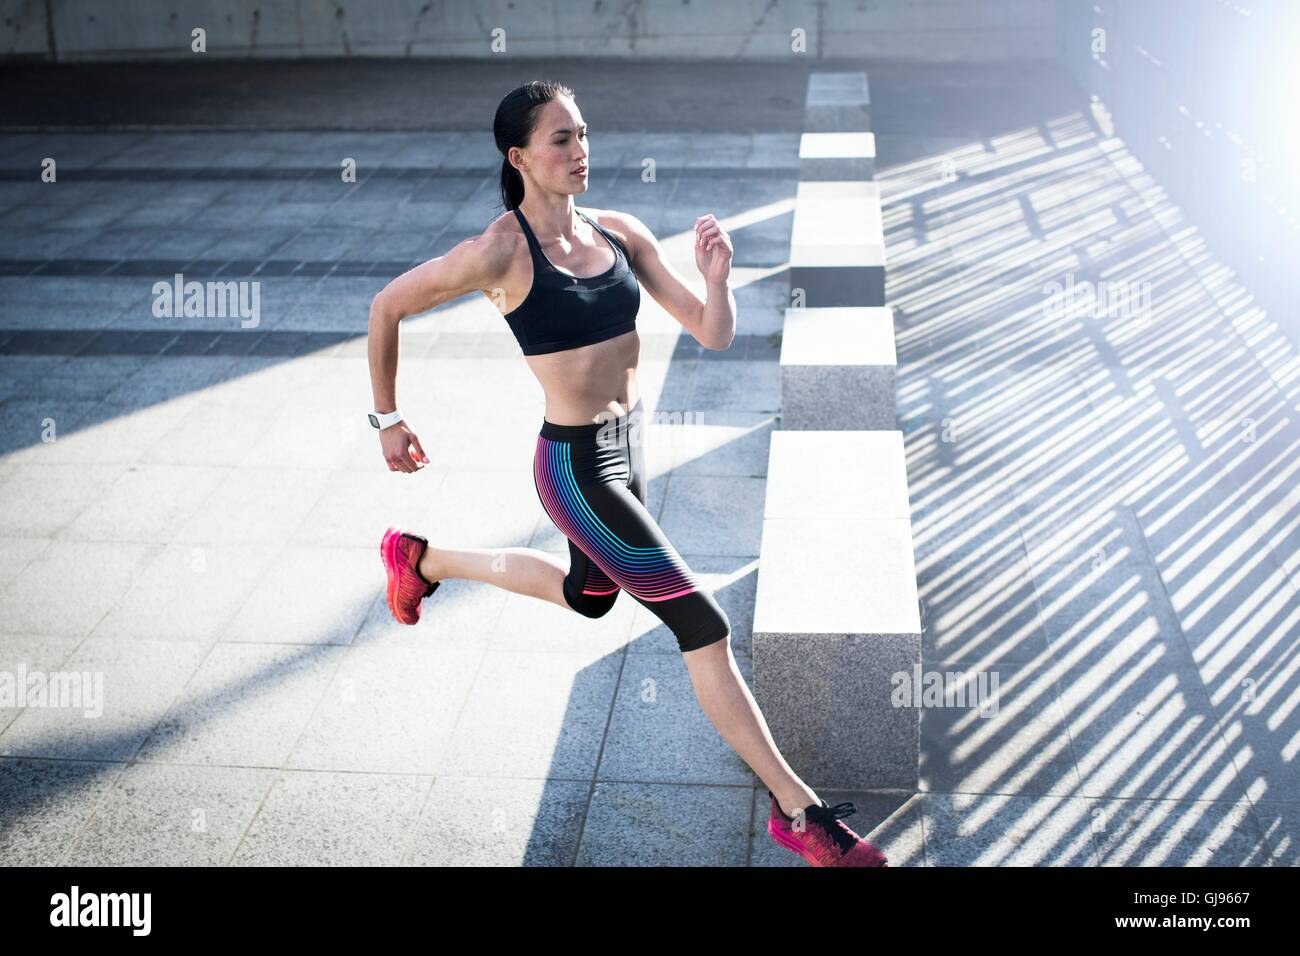 MODEL RELEASED. Young woman running across concrete, high angle. - Stock Image